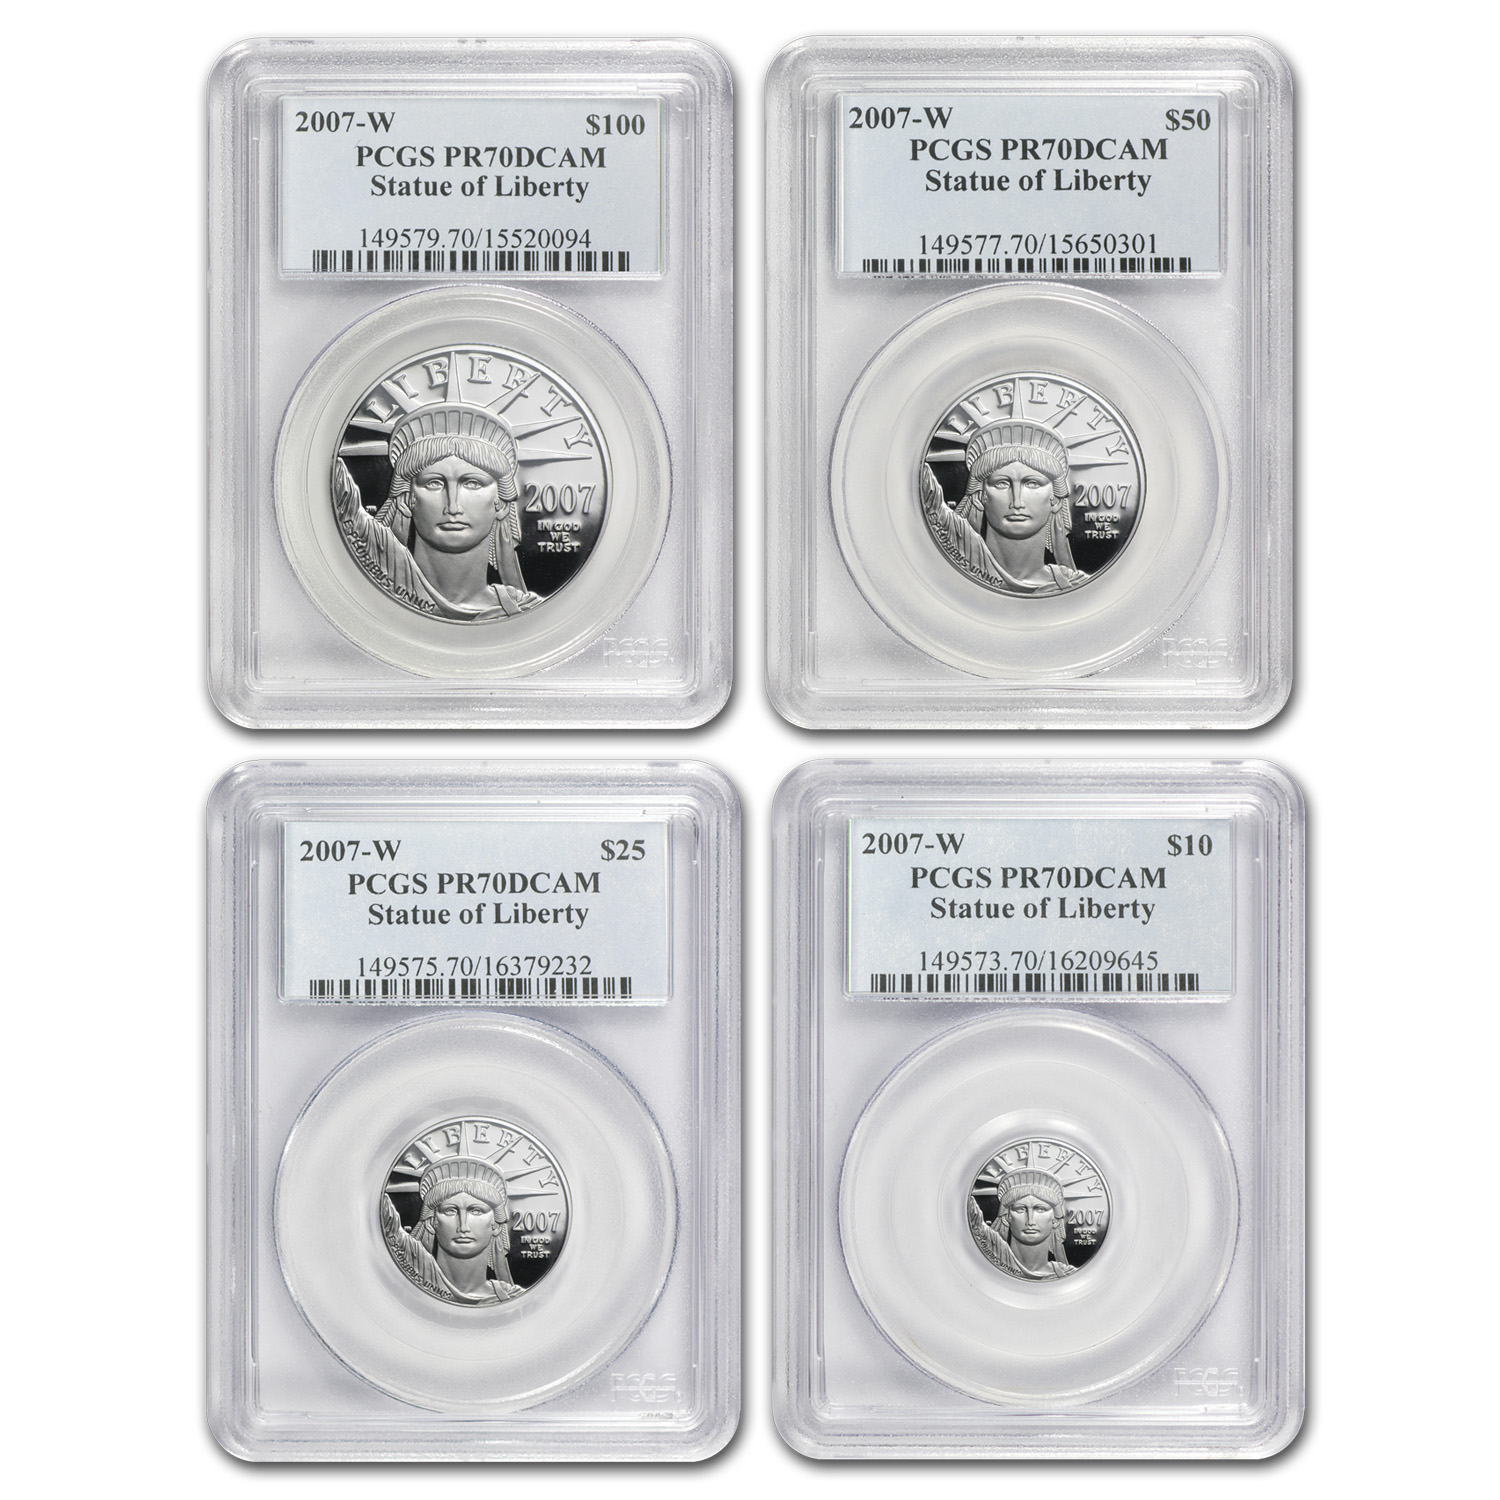 2007-W 4-Coin Proof Platinum American Eagle Set PR-70 PCGS